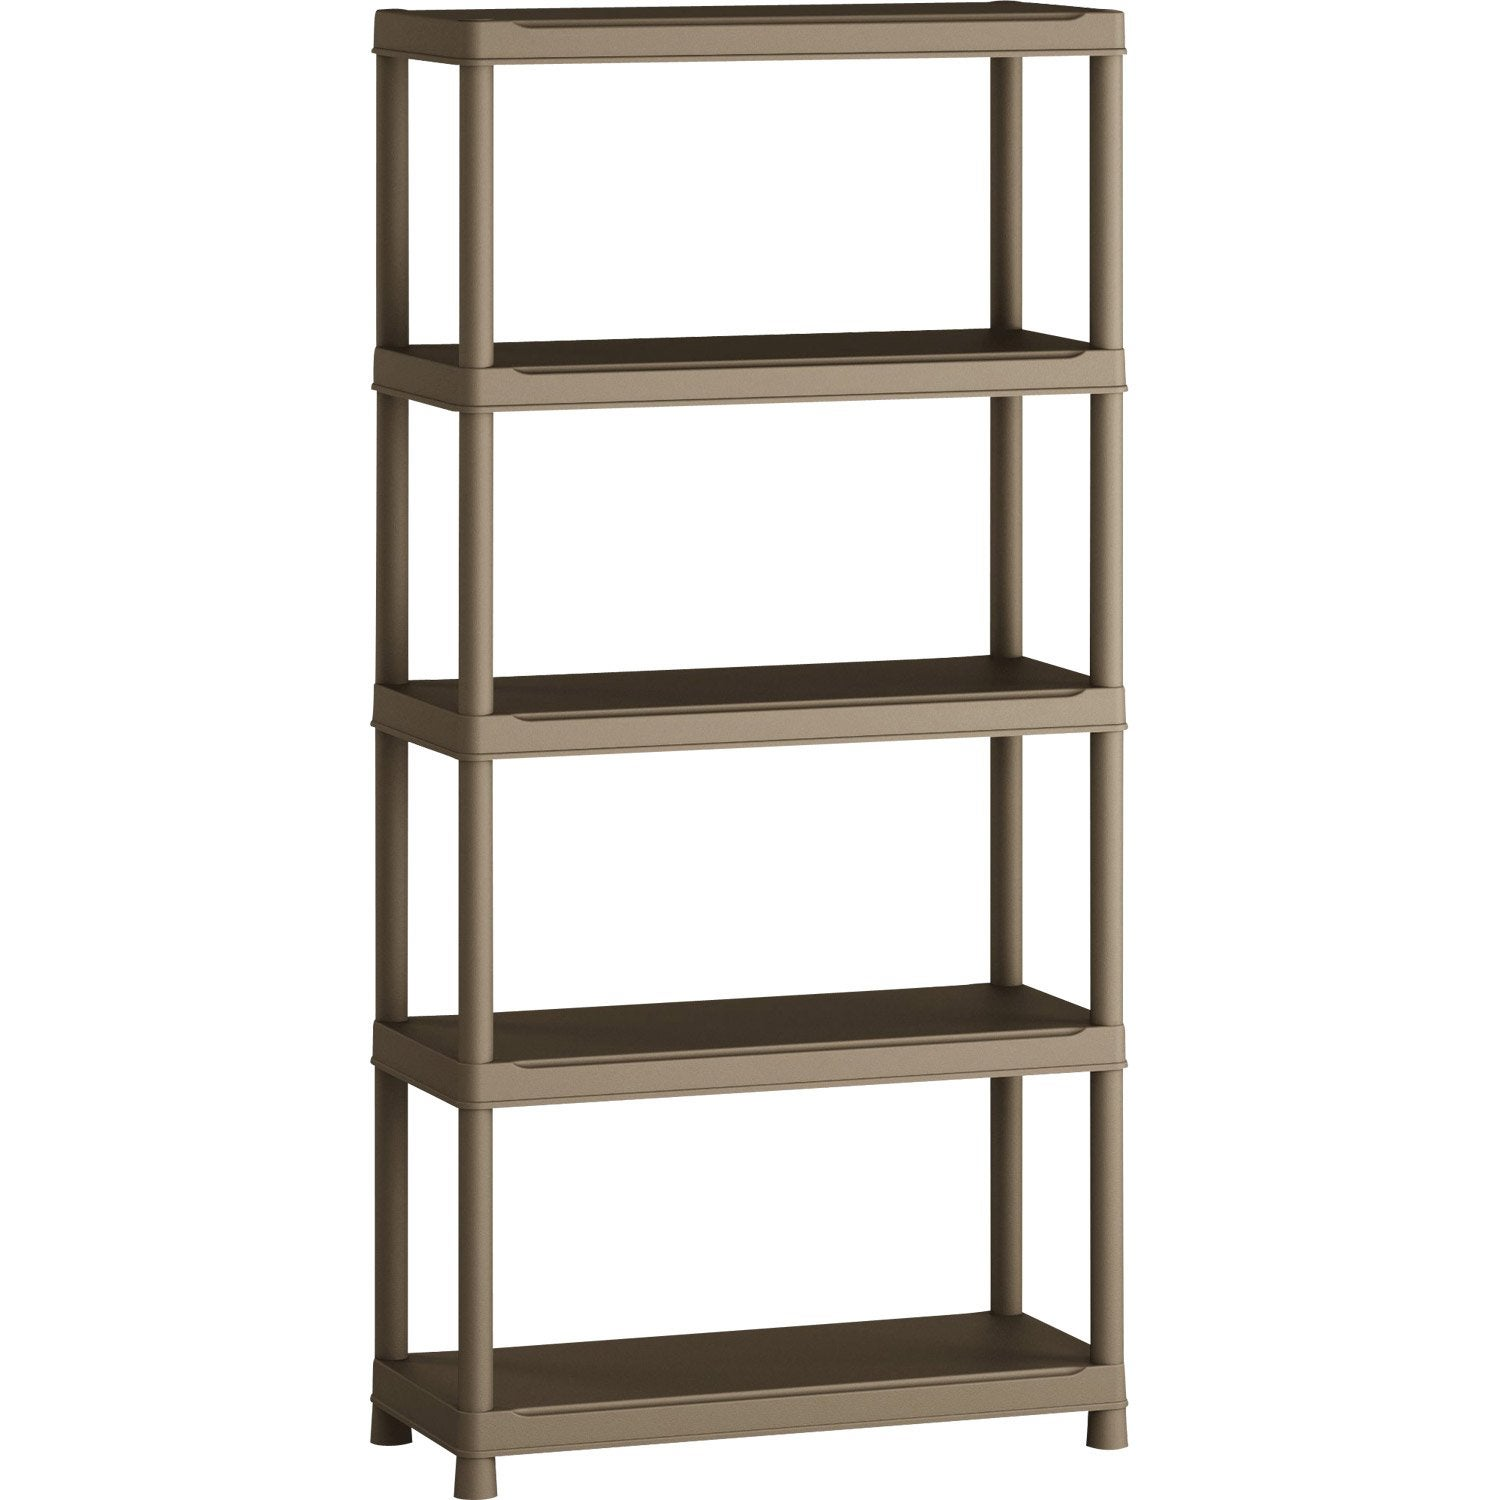 etagere inox leroy merlin design etagere bambou salle de. Black Bedroom Furniture Sets. Home Design Ideas